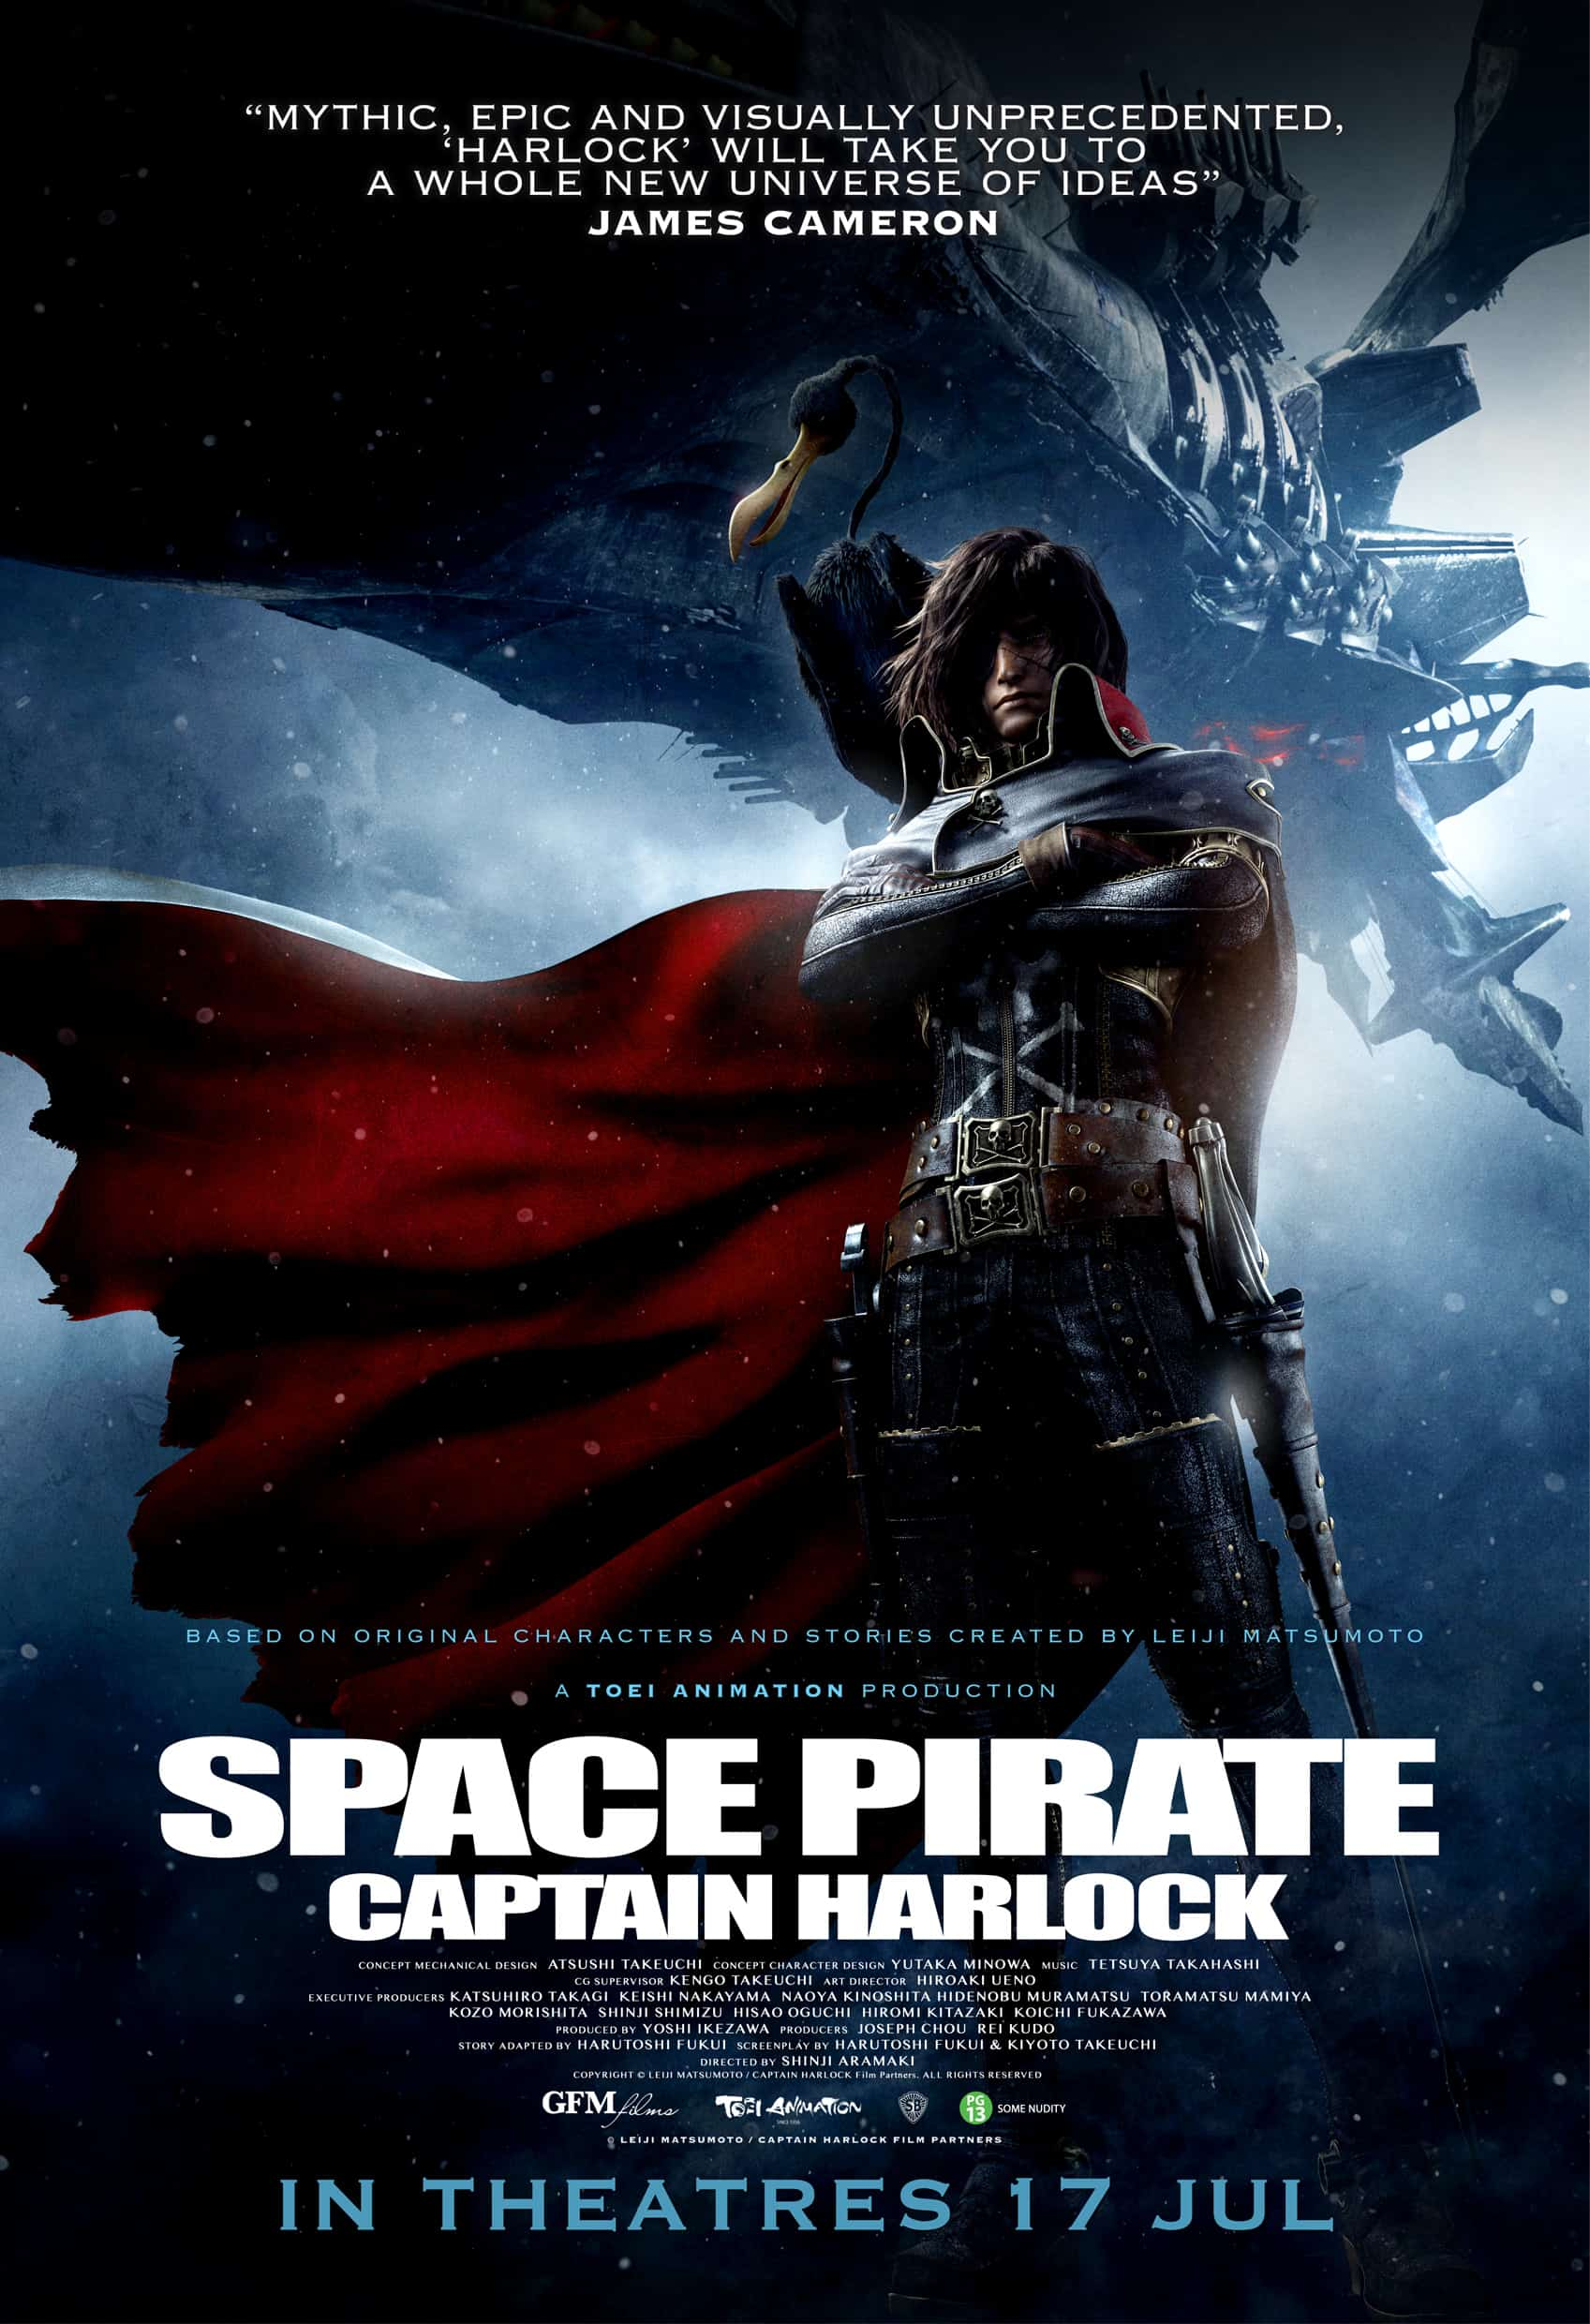 SPACE PIRATE CAPTAIN HARLOCK – Review